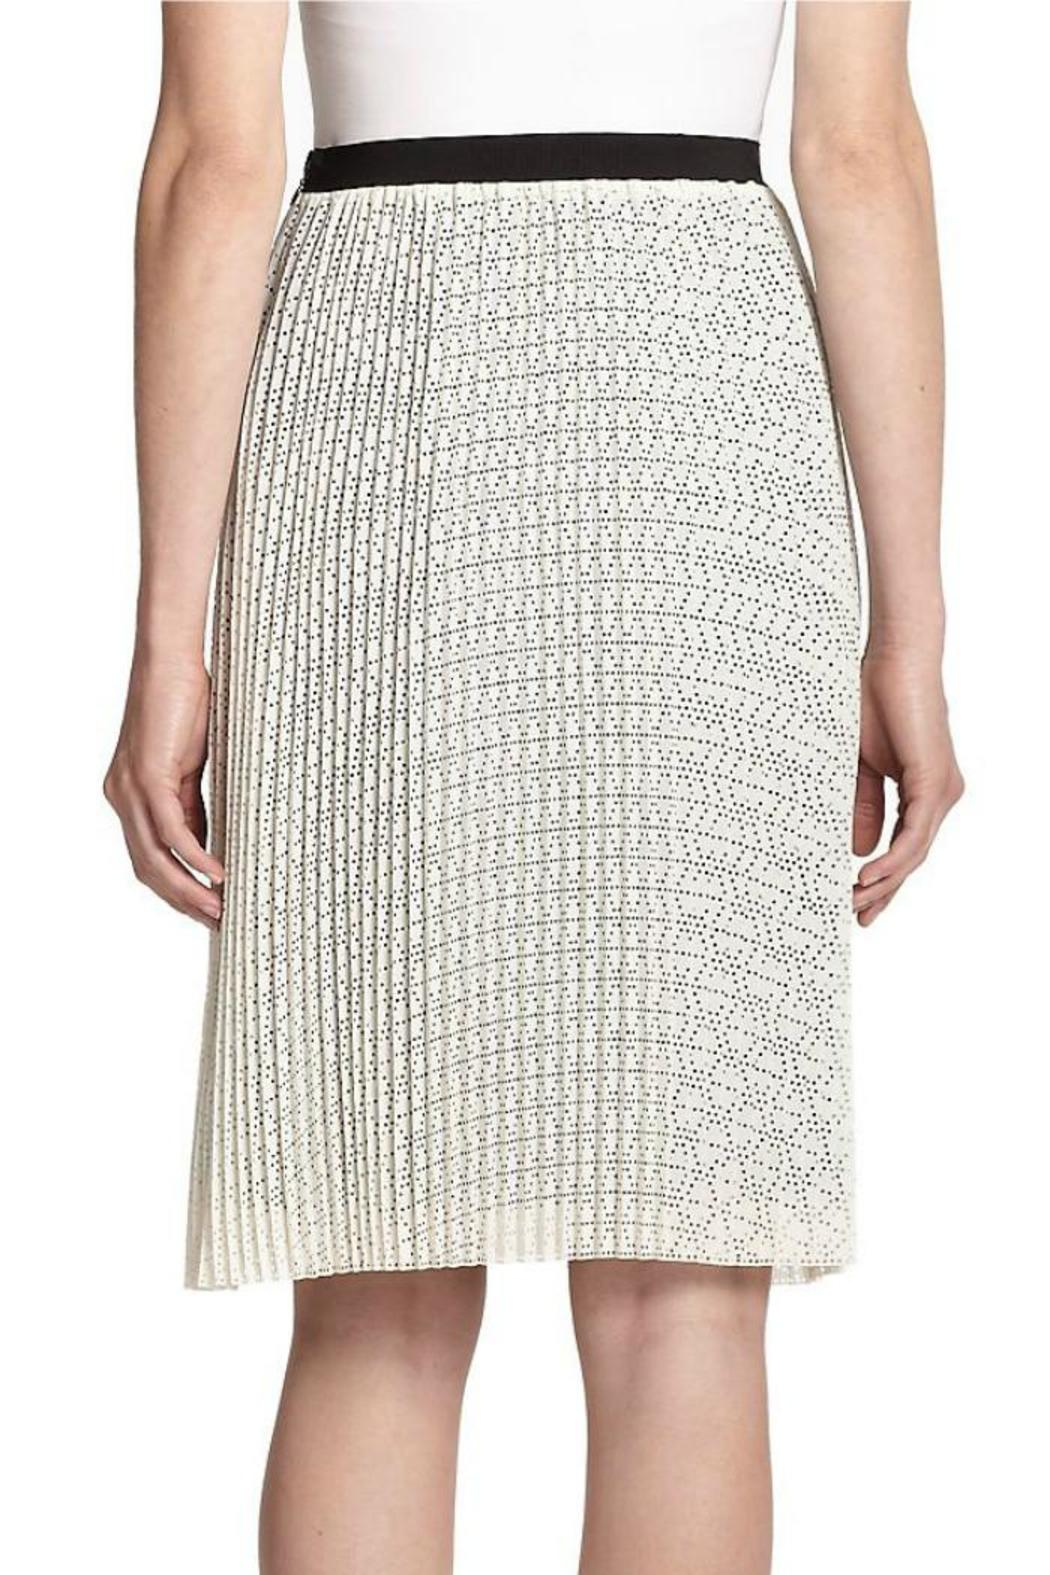 Joie Jacinthe Pleated Skirt - Side Cropped Image